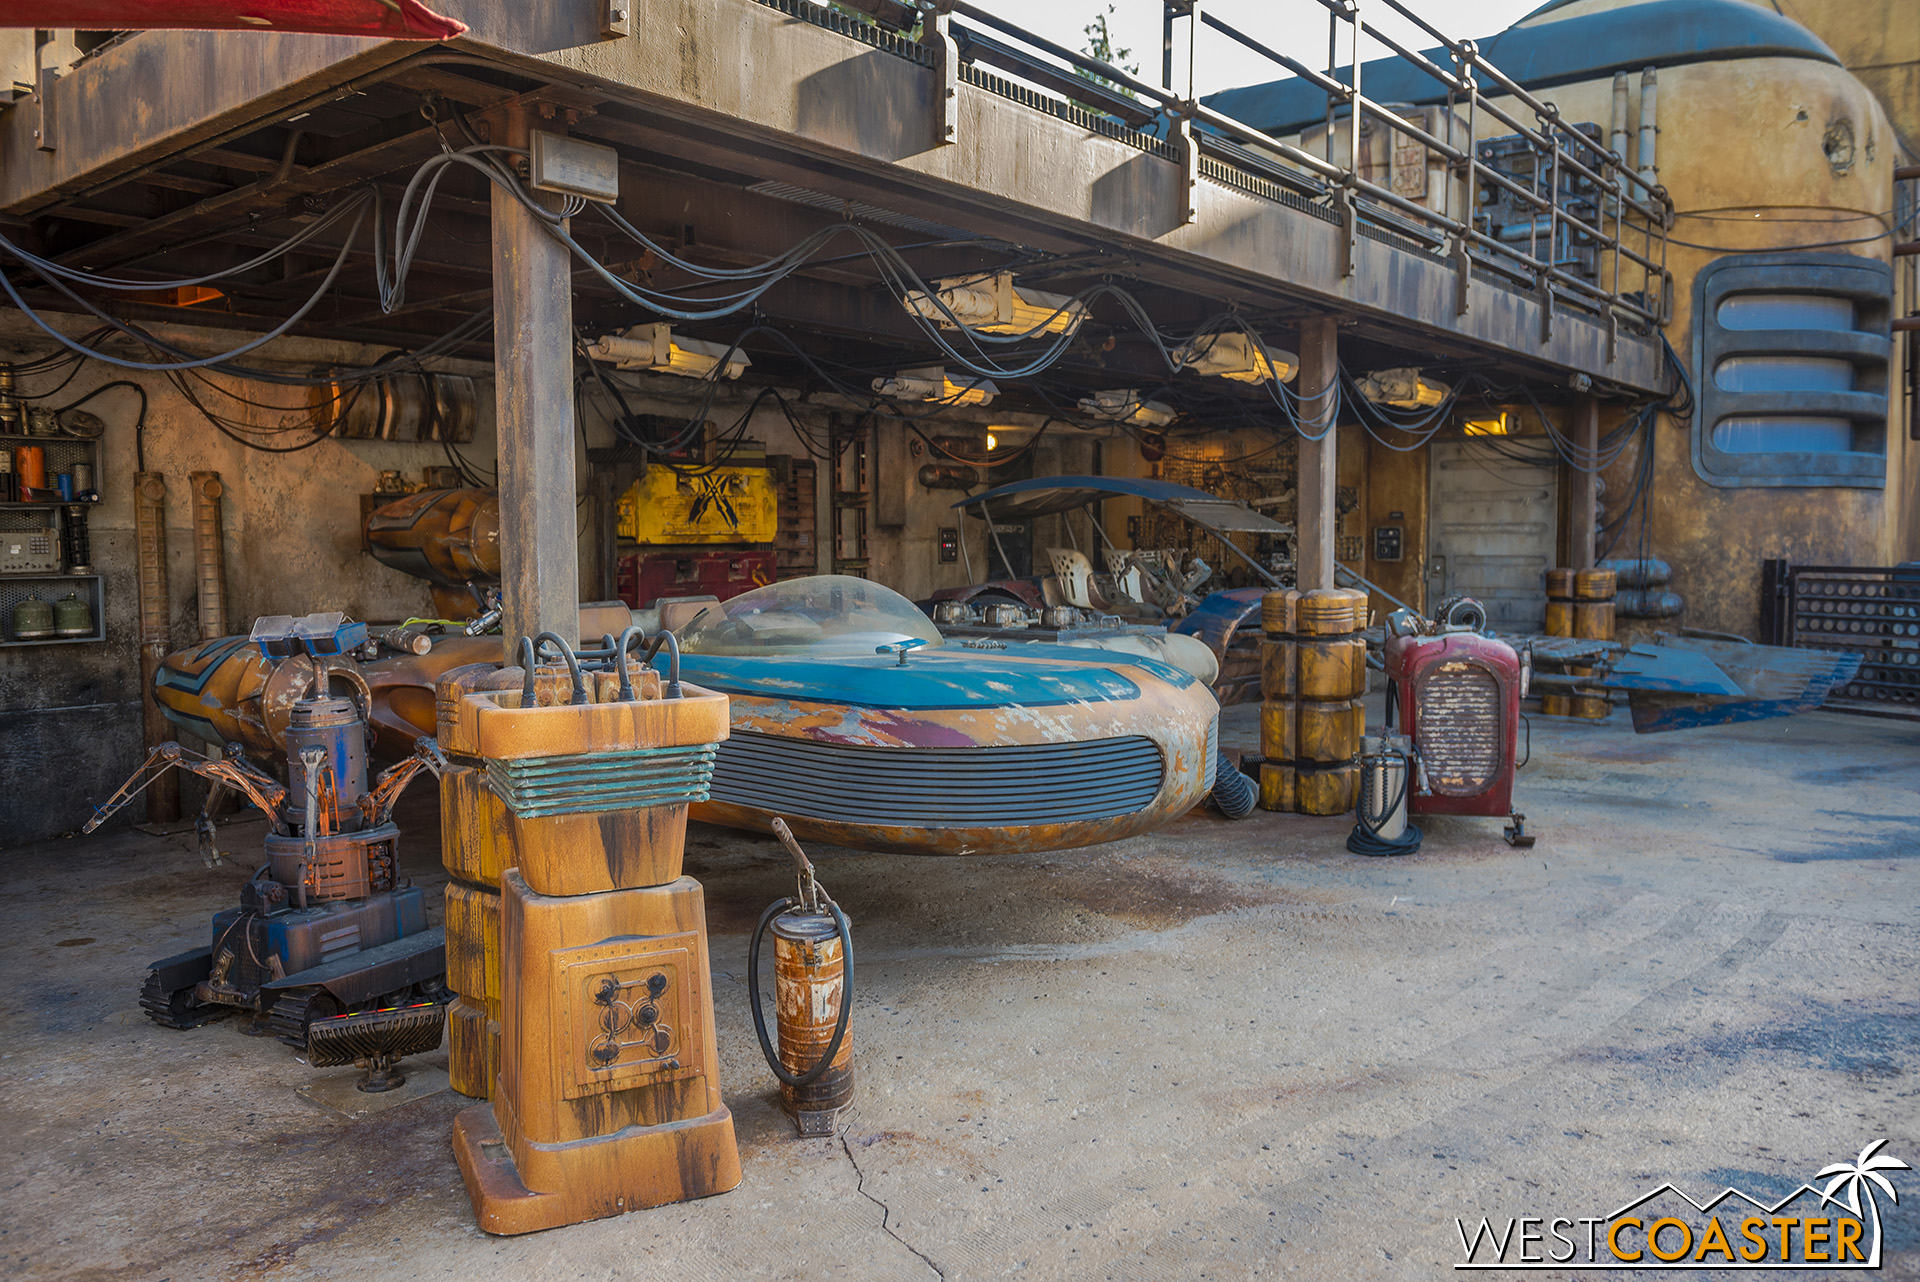 This area is a bit of a repair shop for some land speeders.